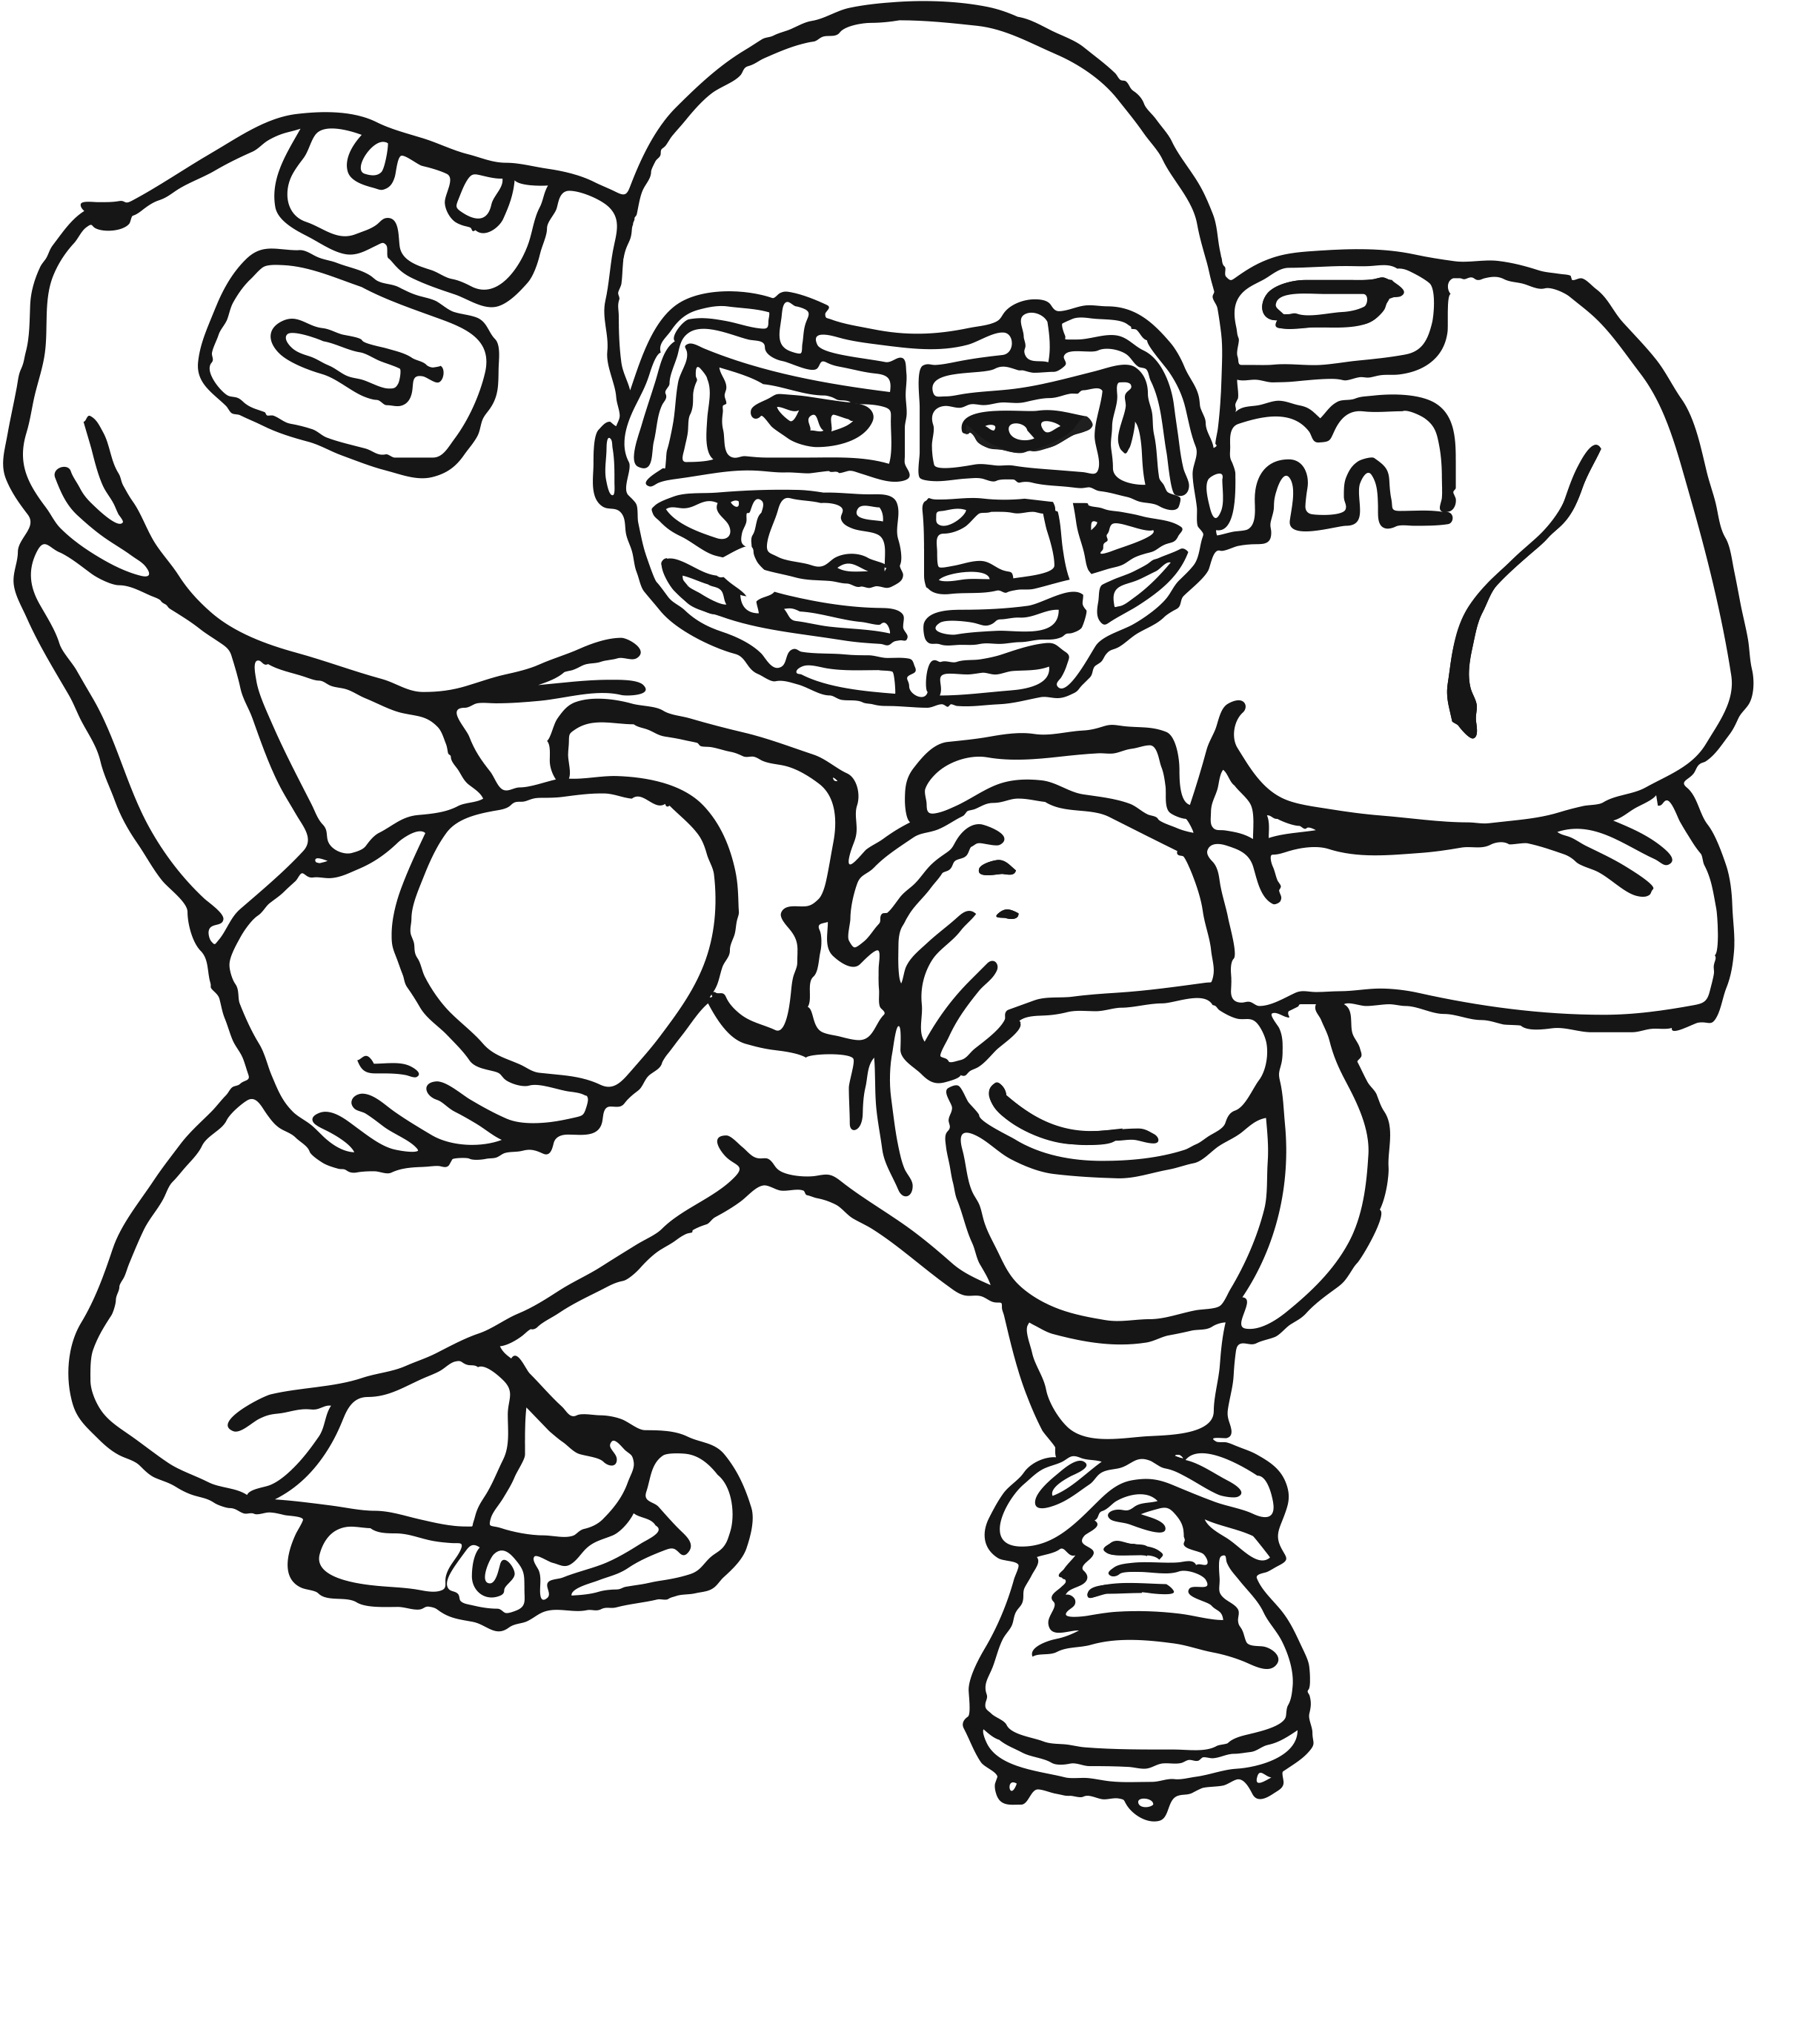 photo regarding Free Printable Football Coloring Pages called Cost-free Printable Soccer Coloring Web pages for Children - Great